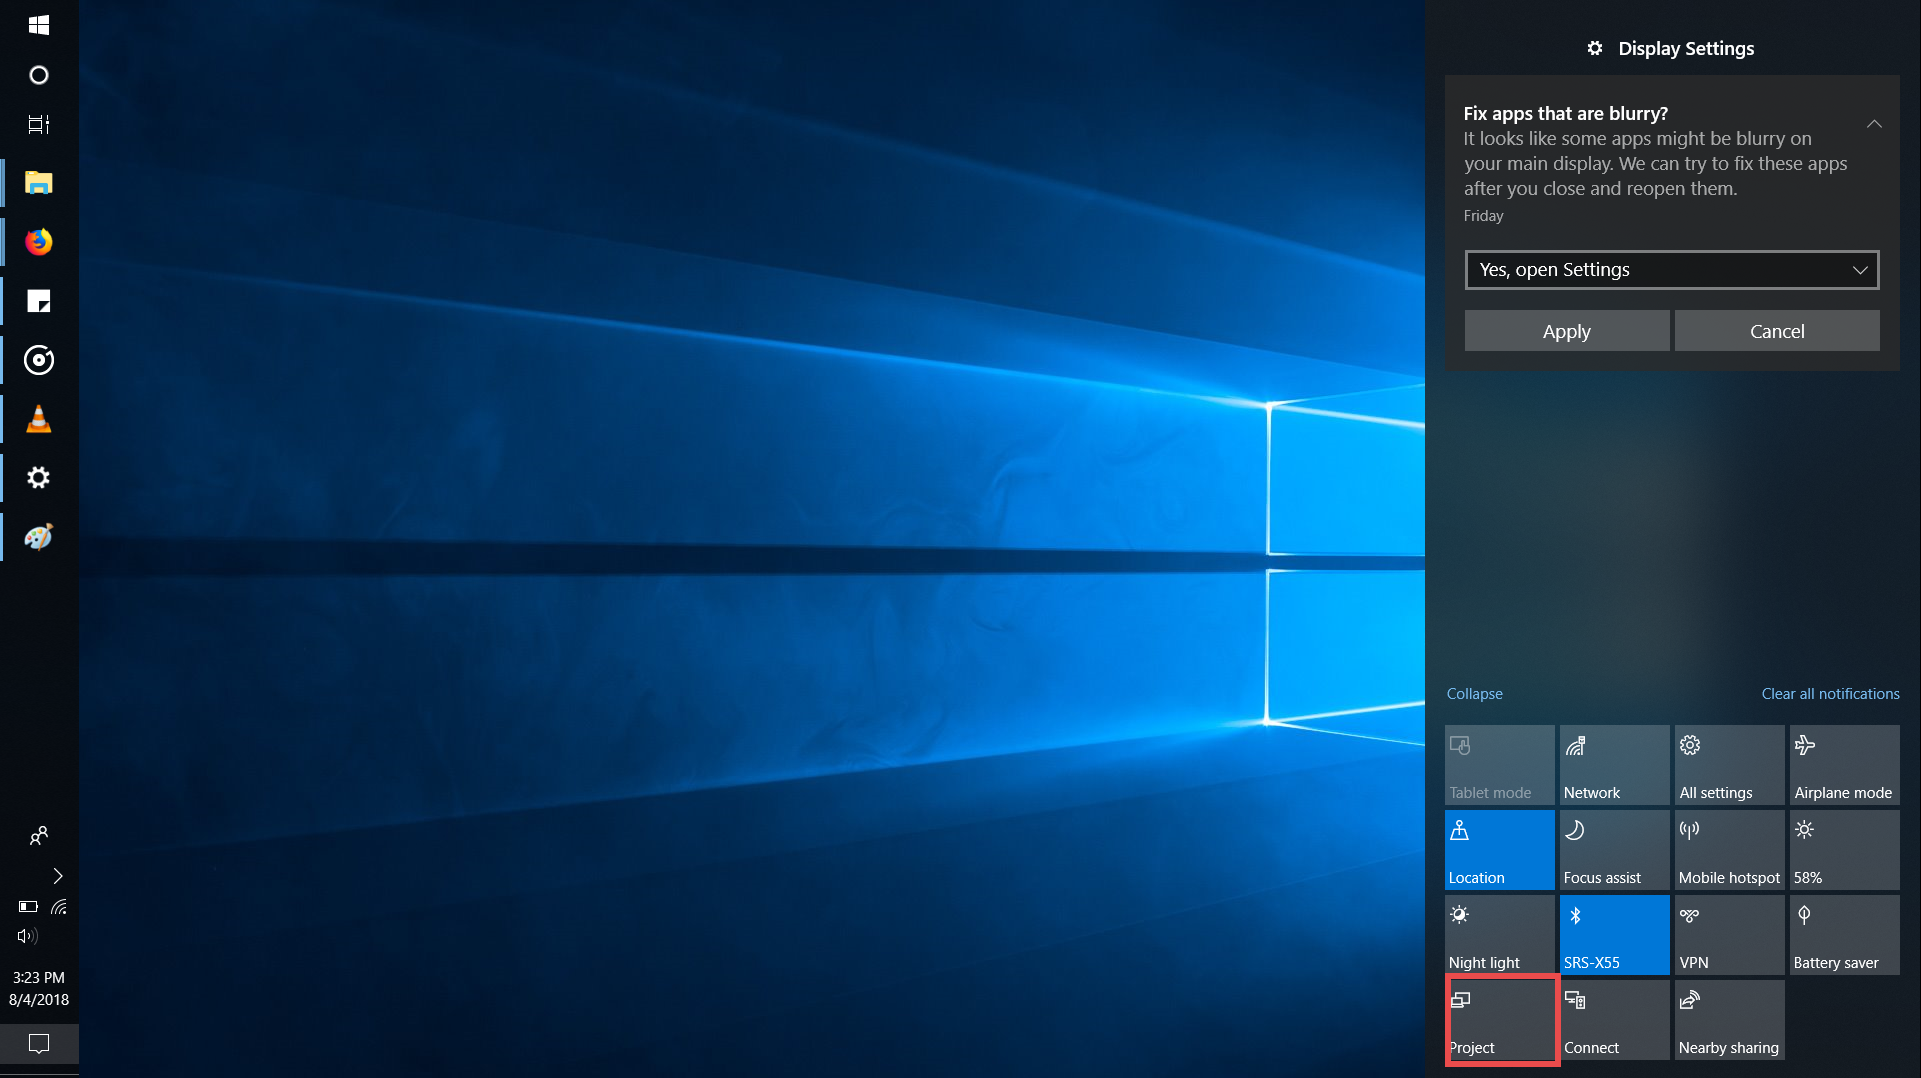 How to cast media from Windows 10 PC to your Smart TV - Dignited